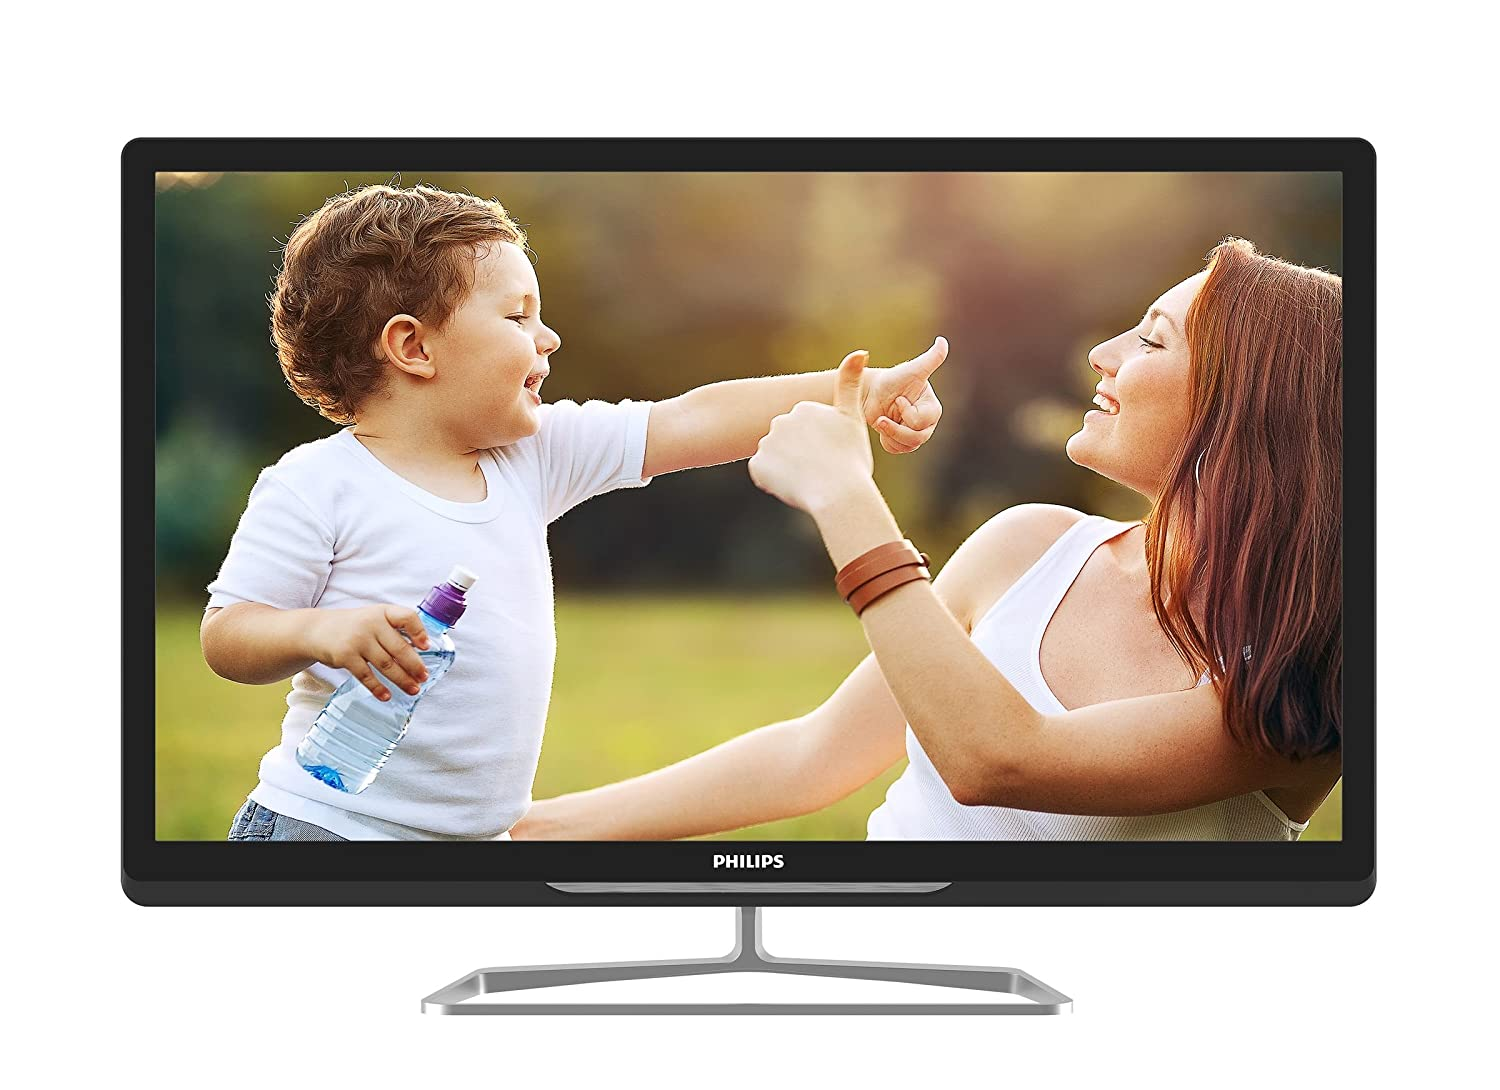 Philips 39PFL3931/V7 39 Inch Full HD LED TV